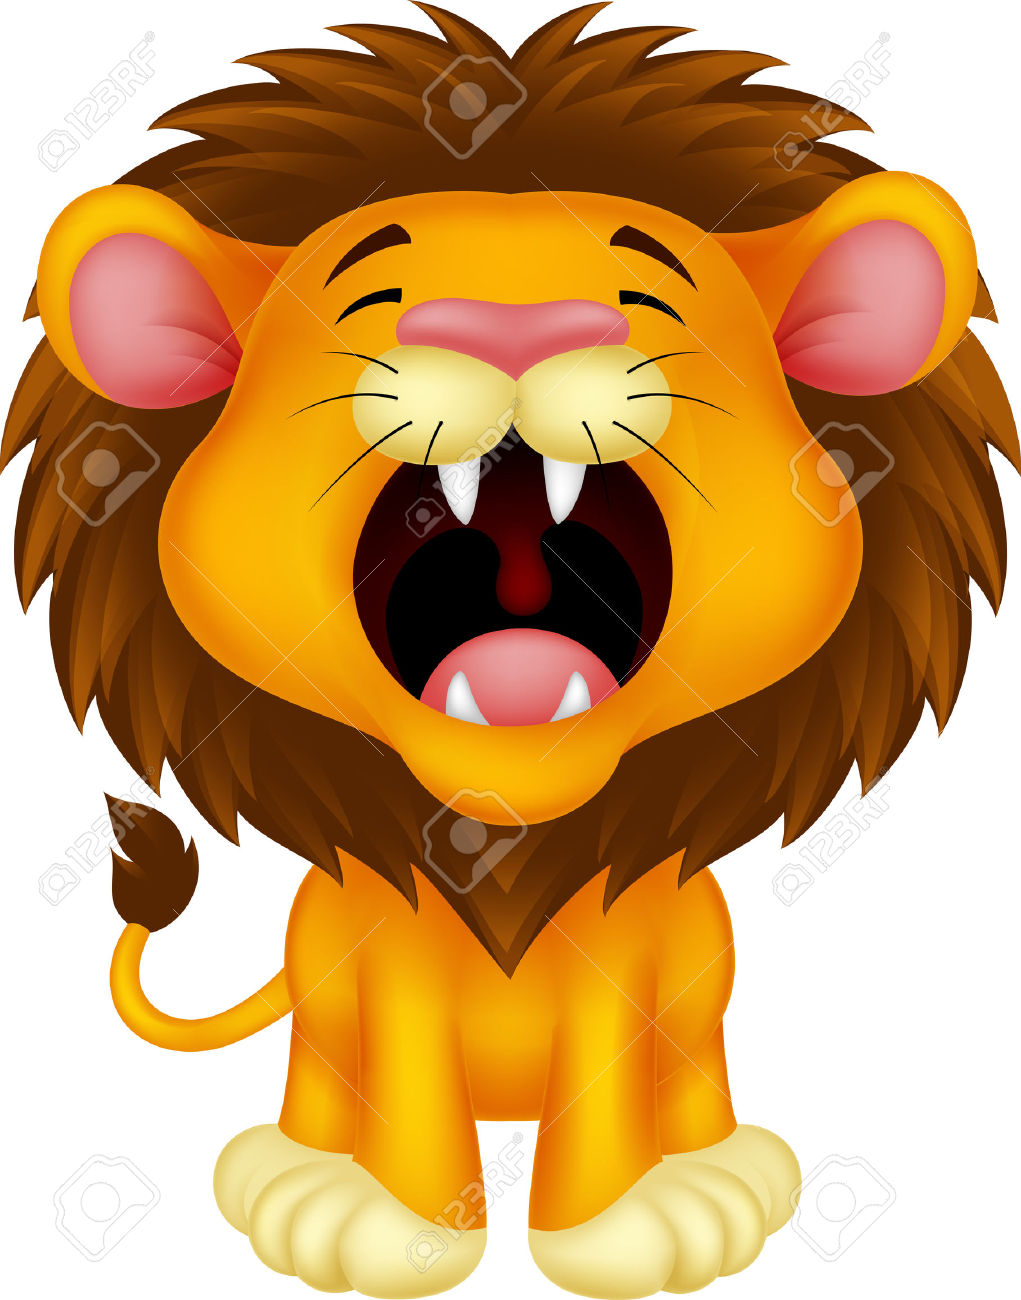 Lion Mouth Open Images & Stock Pictures. Royalty Free Lion Mouth.